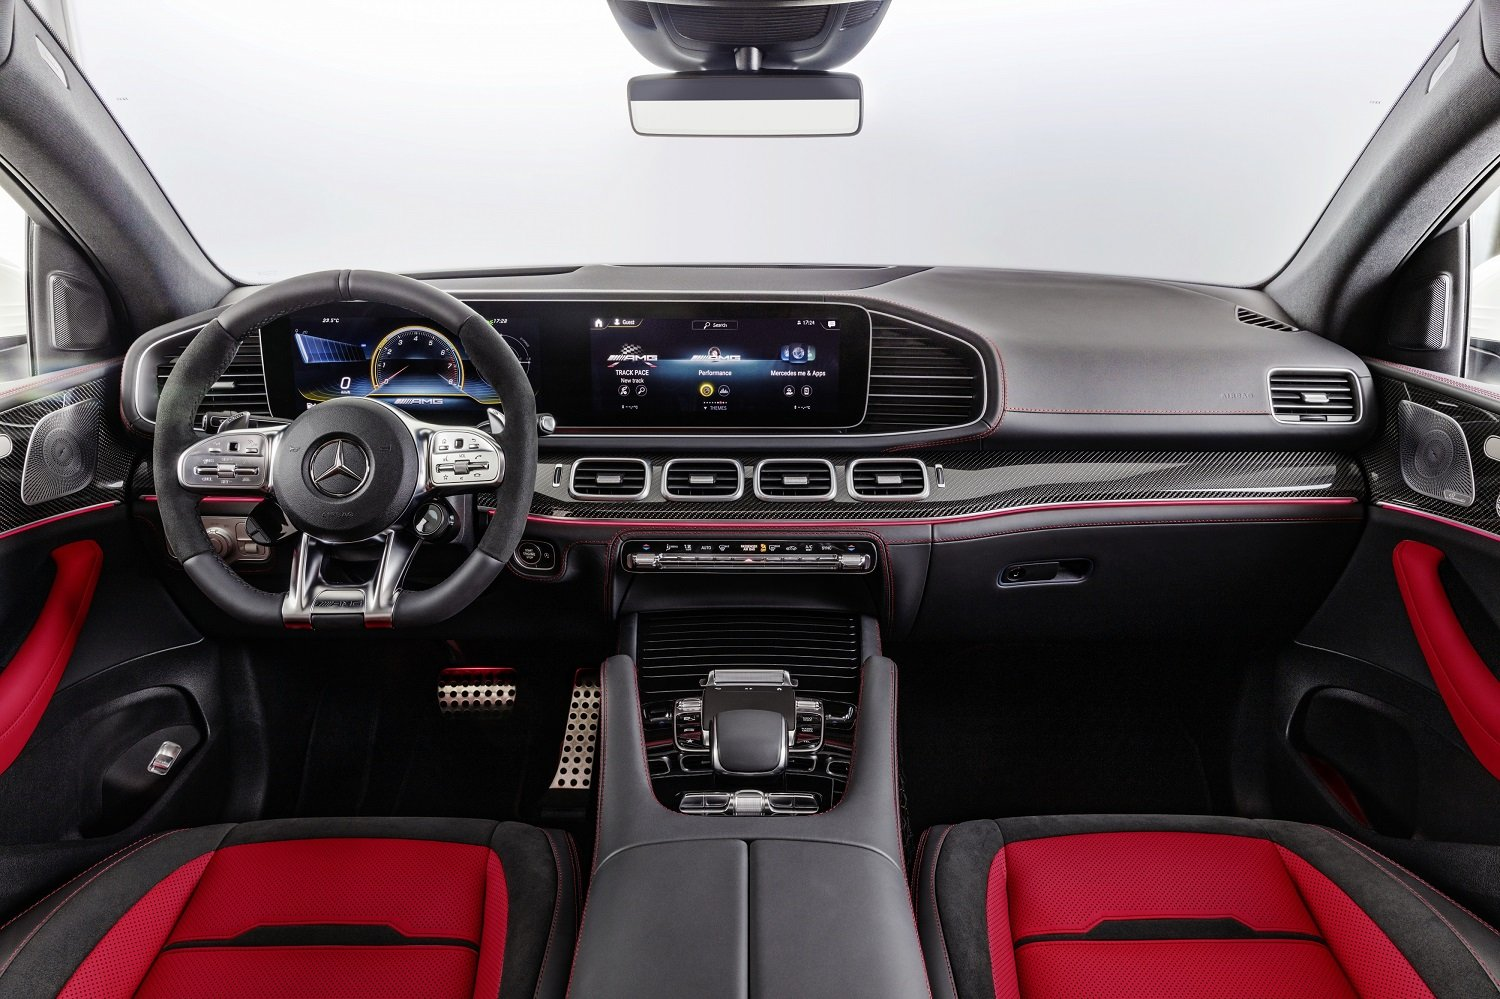 Opulence, spaciousness and agility is the new Mercedes-Benz GLE Coupé